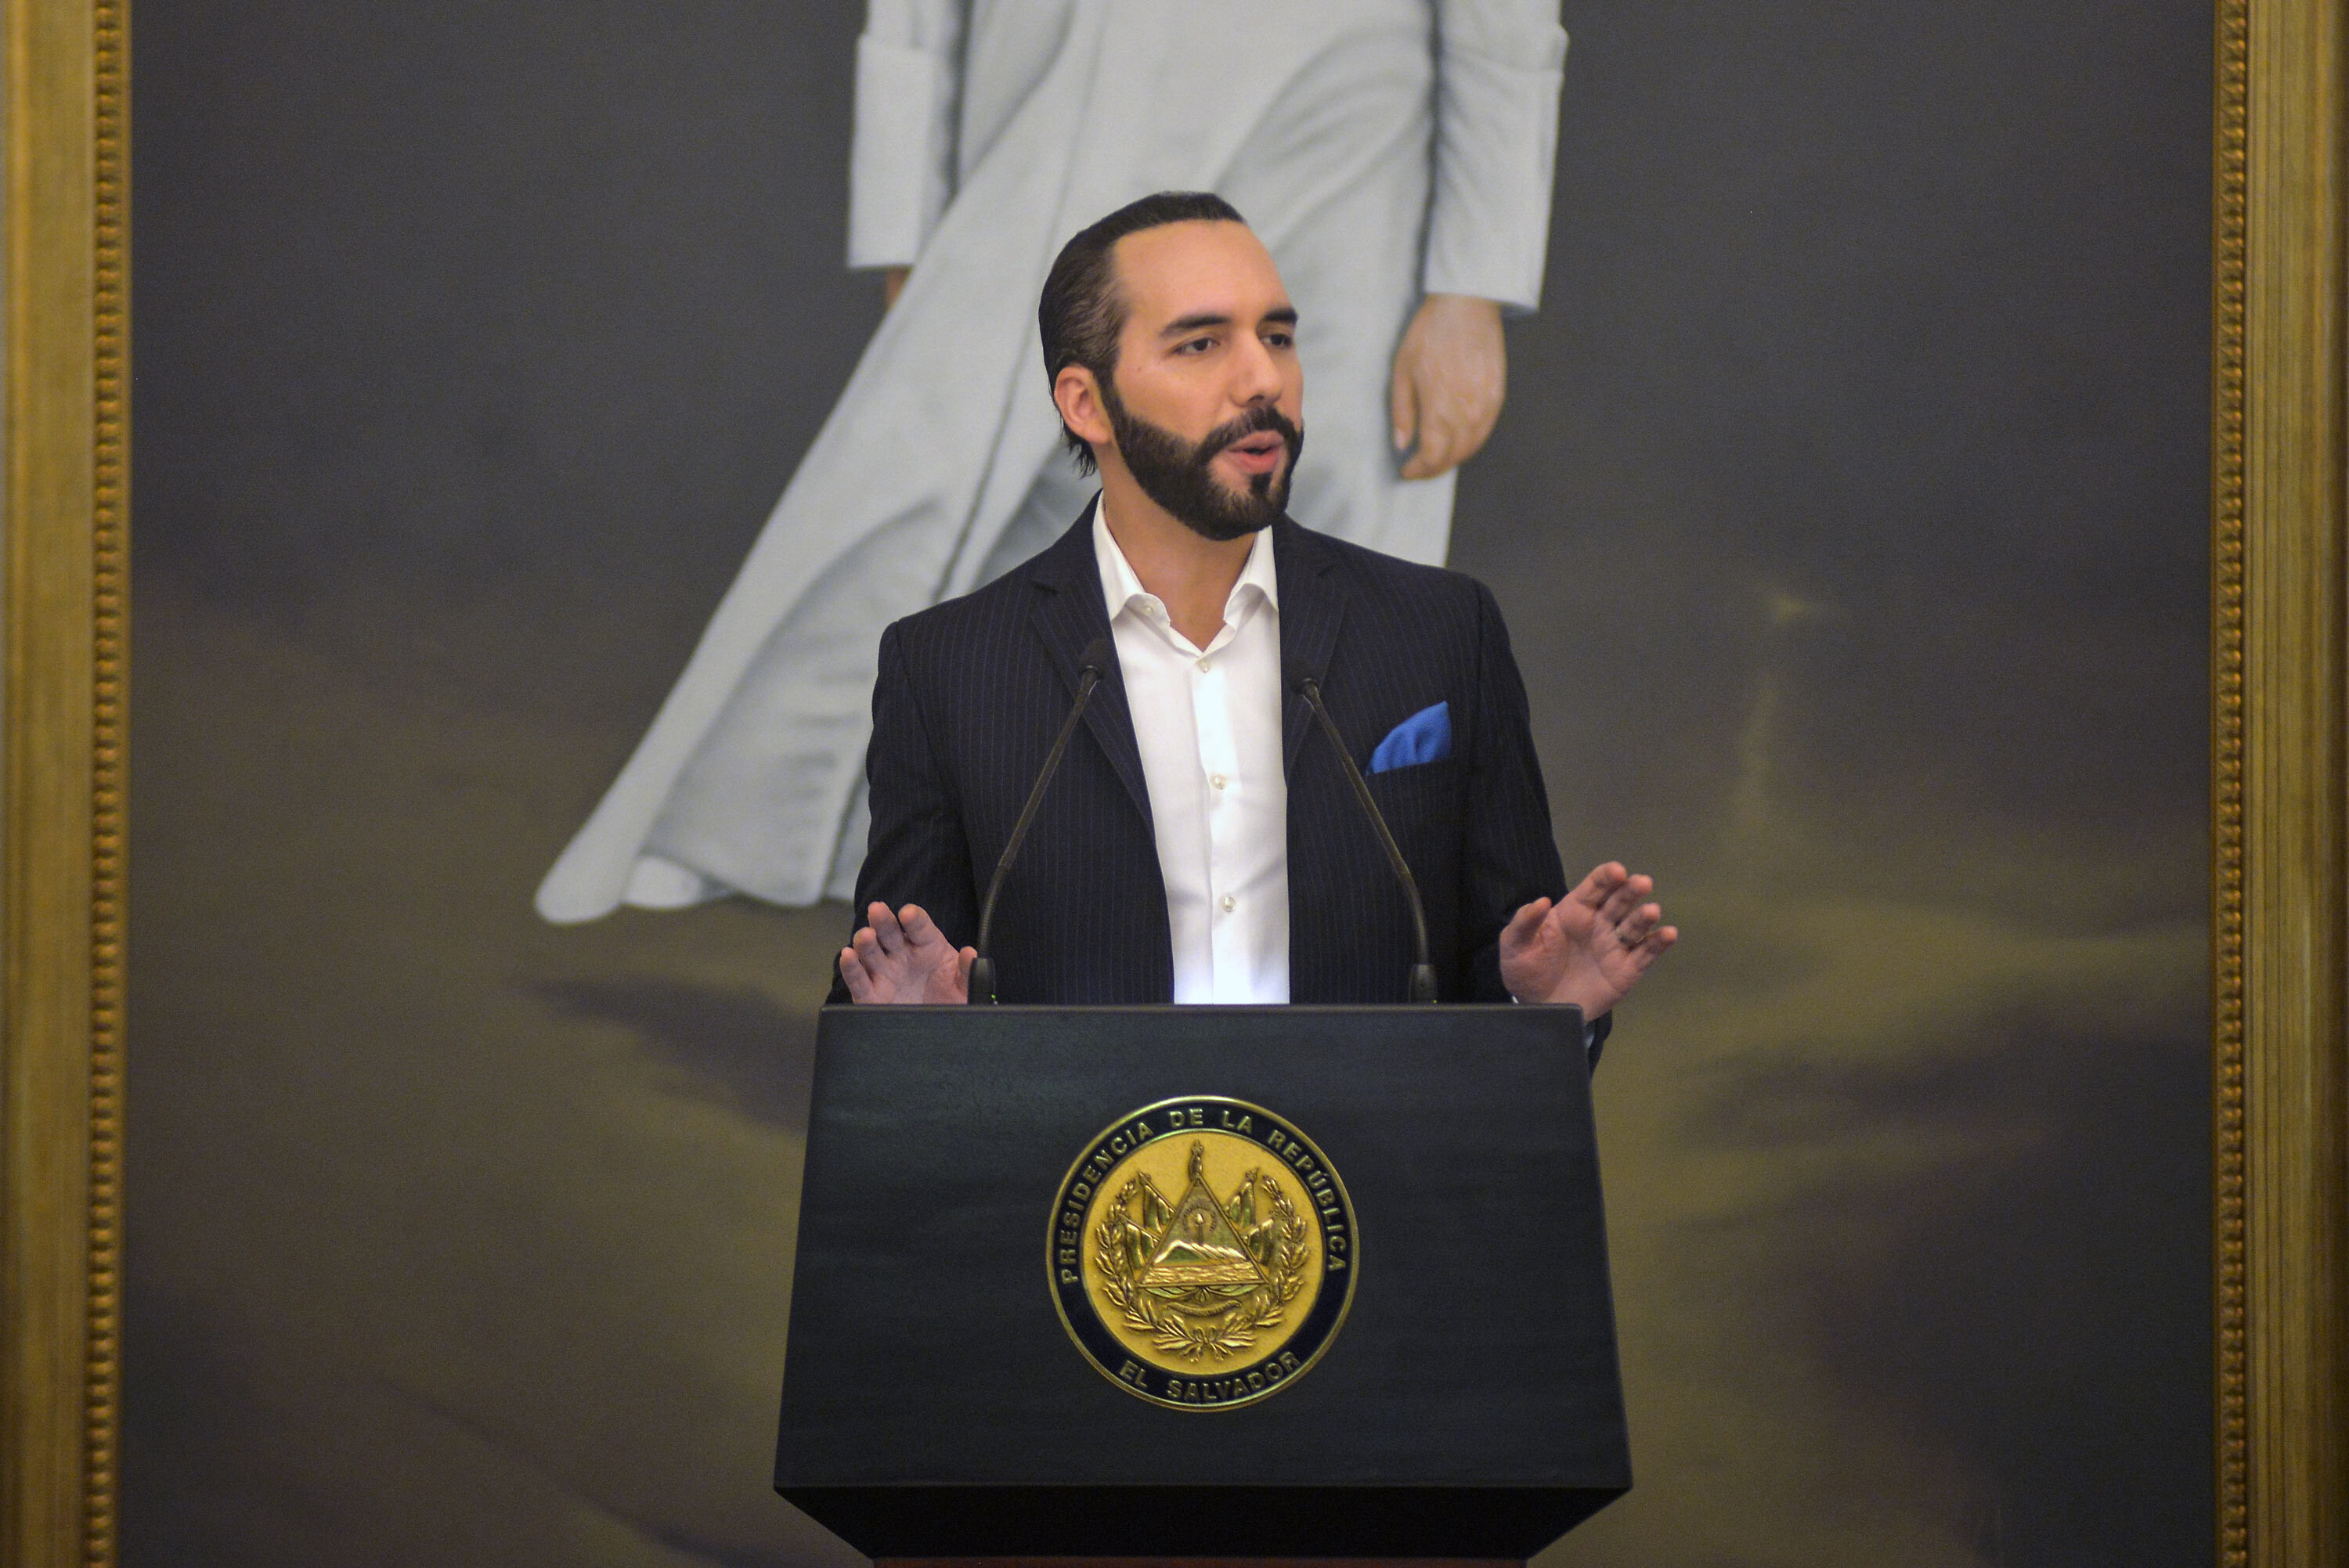 El Salvador buys bitcoin as the digital currency becomes legal tender